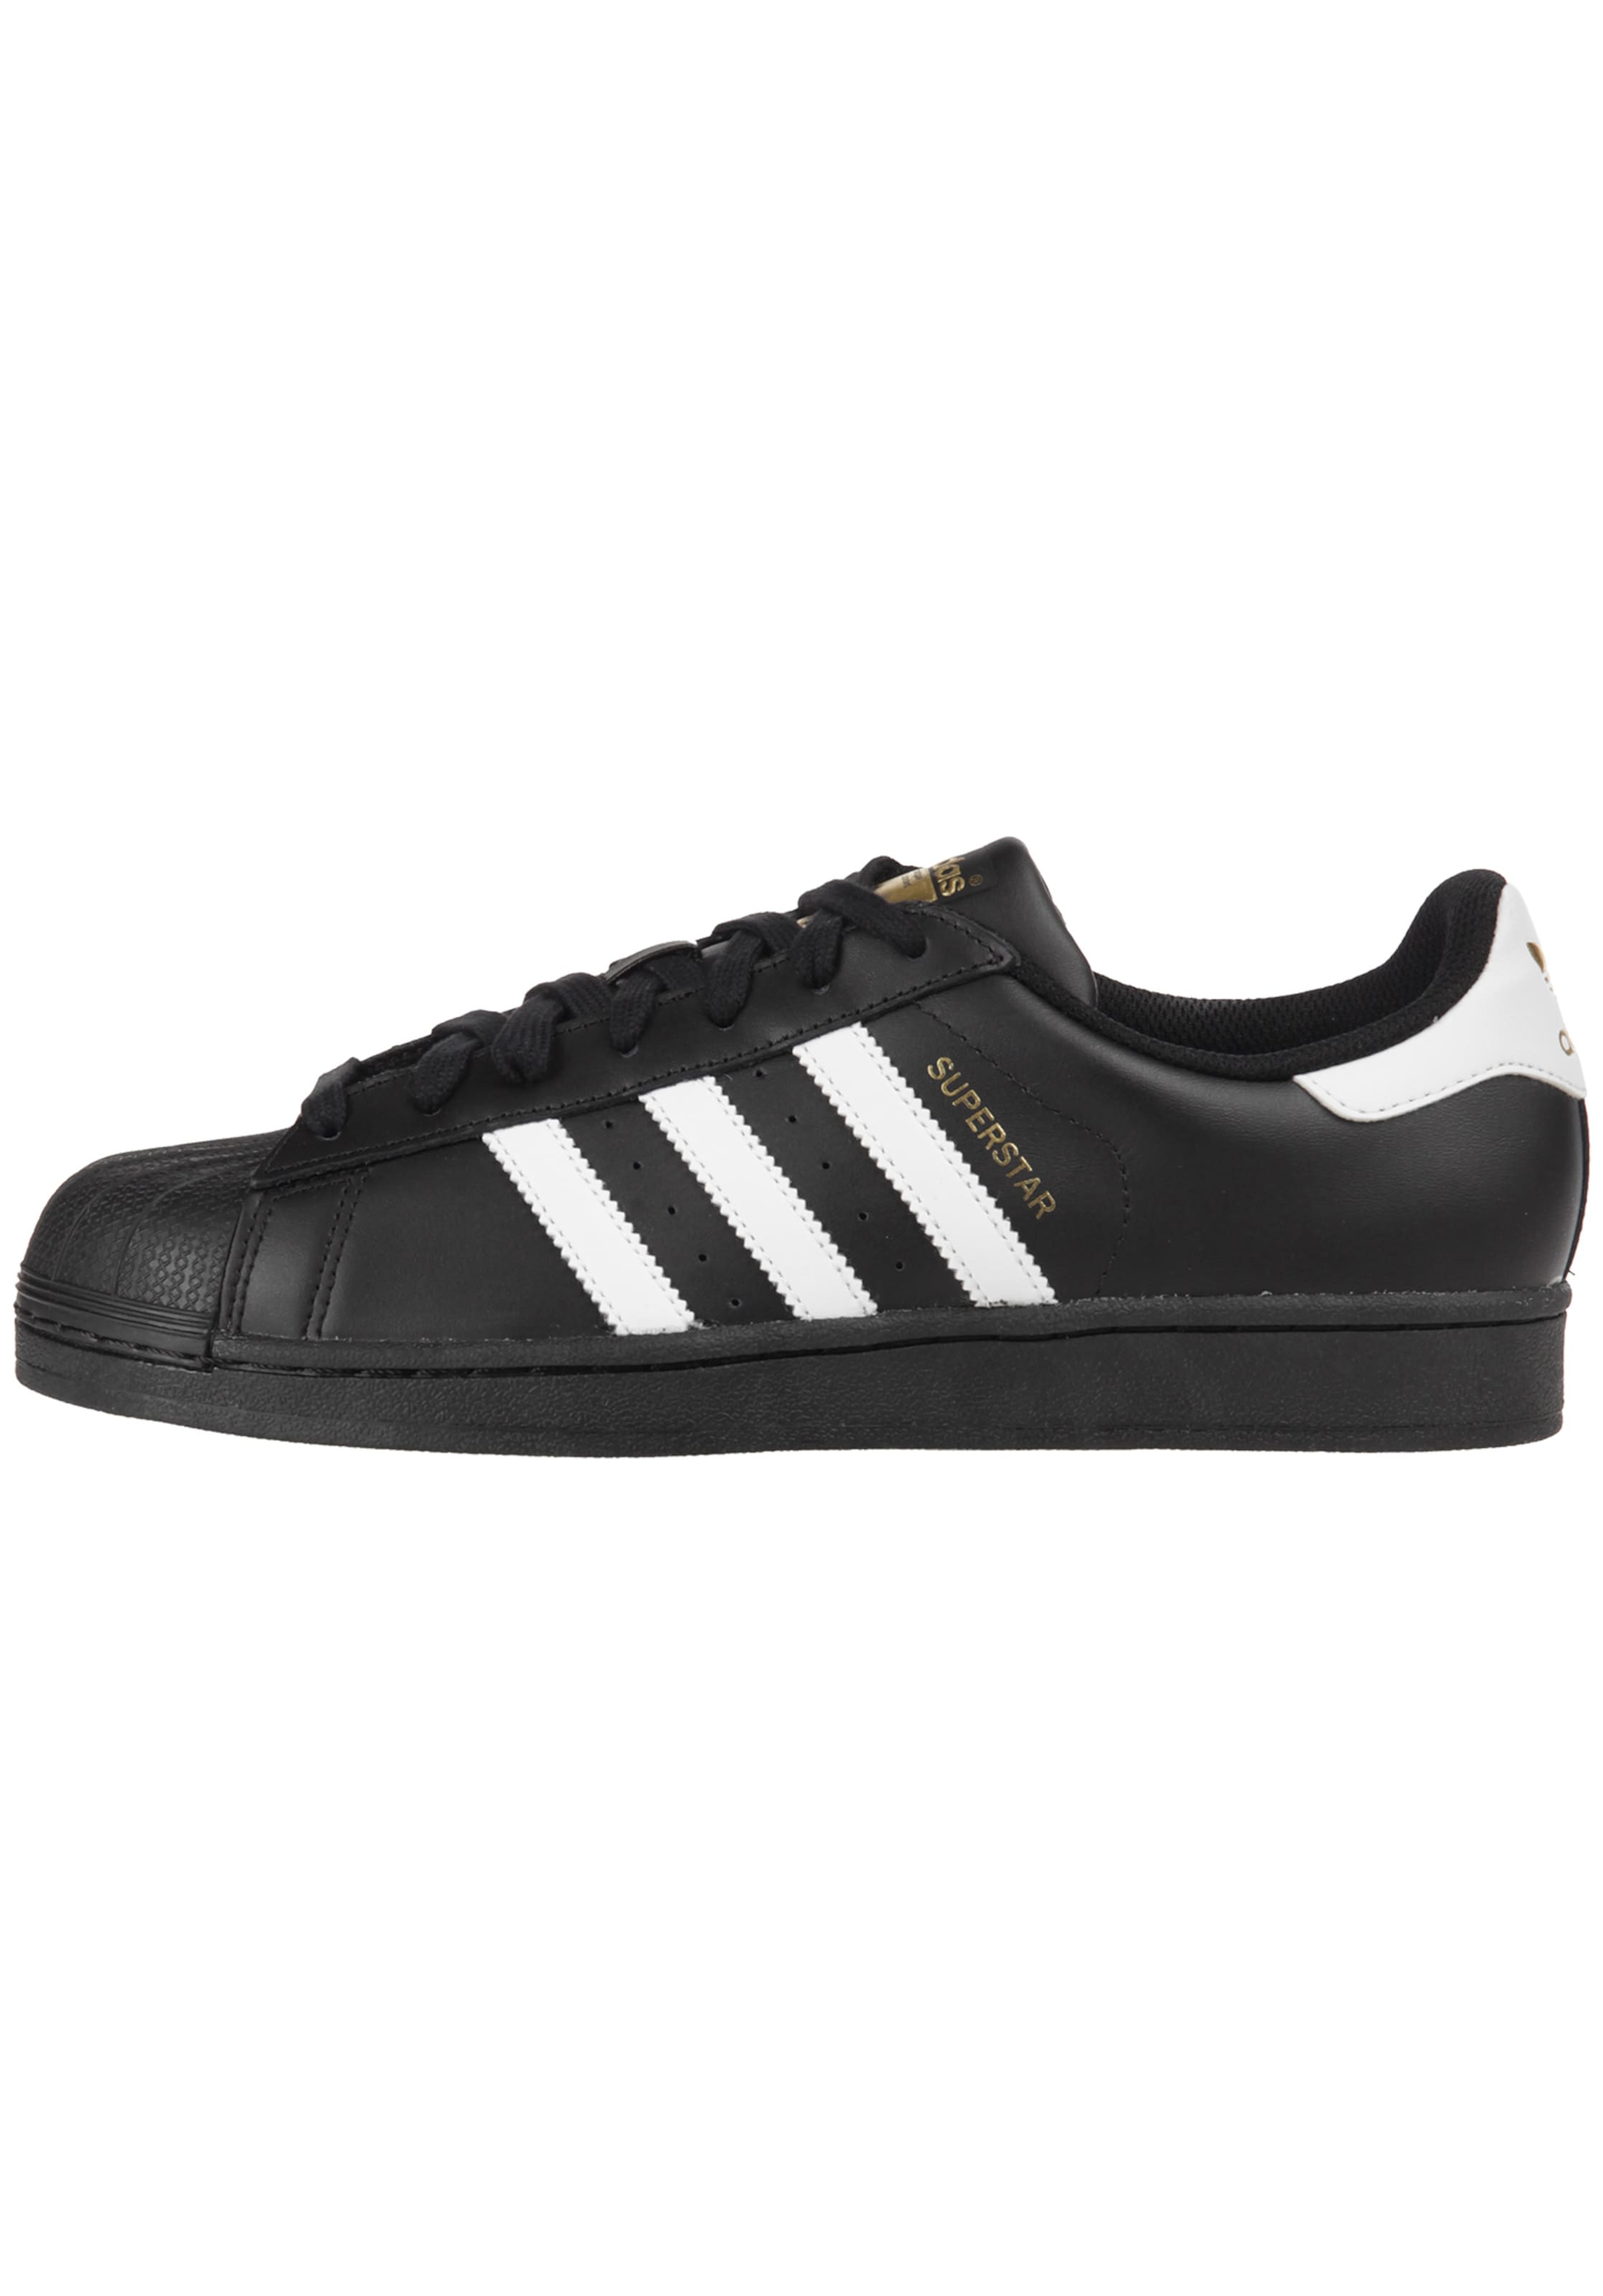 Sneaker 'superstar' Originals Adidas SchwarzWeiß In vm08nNwO